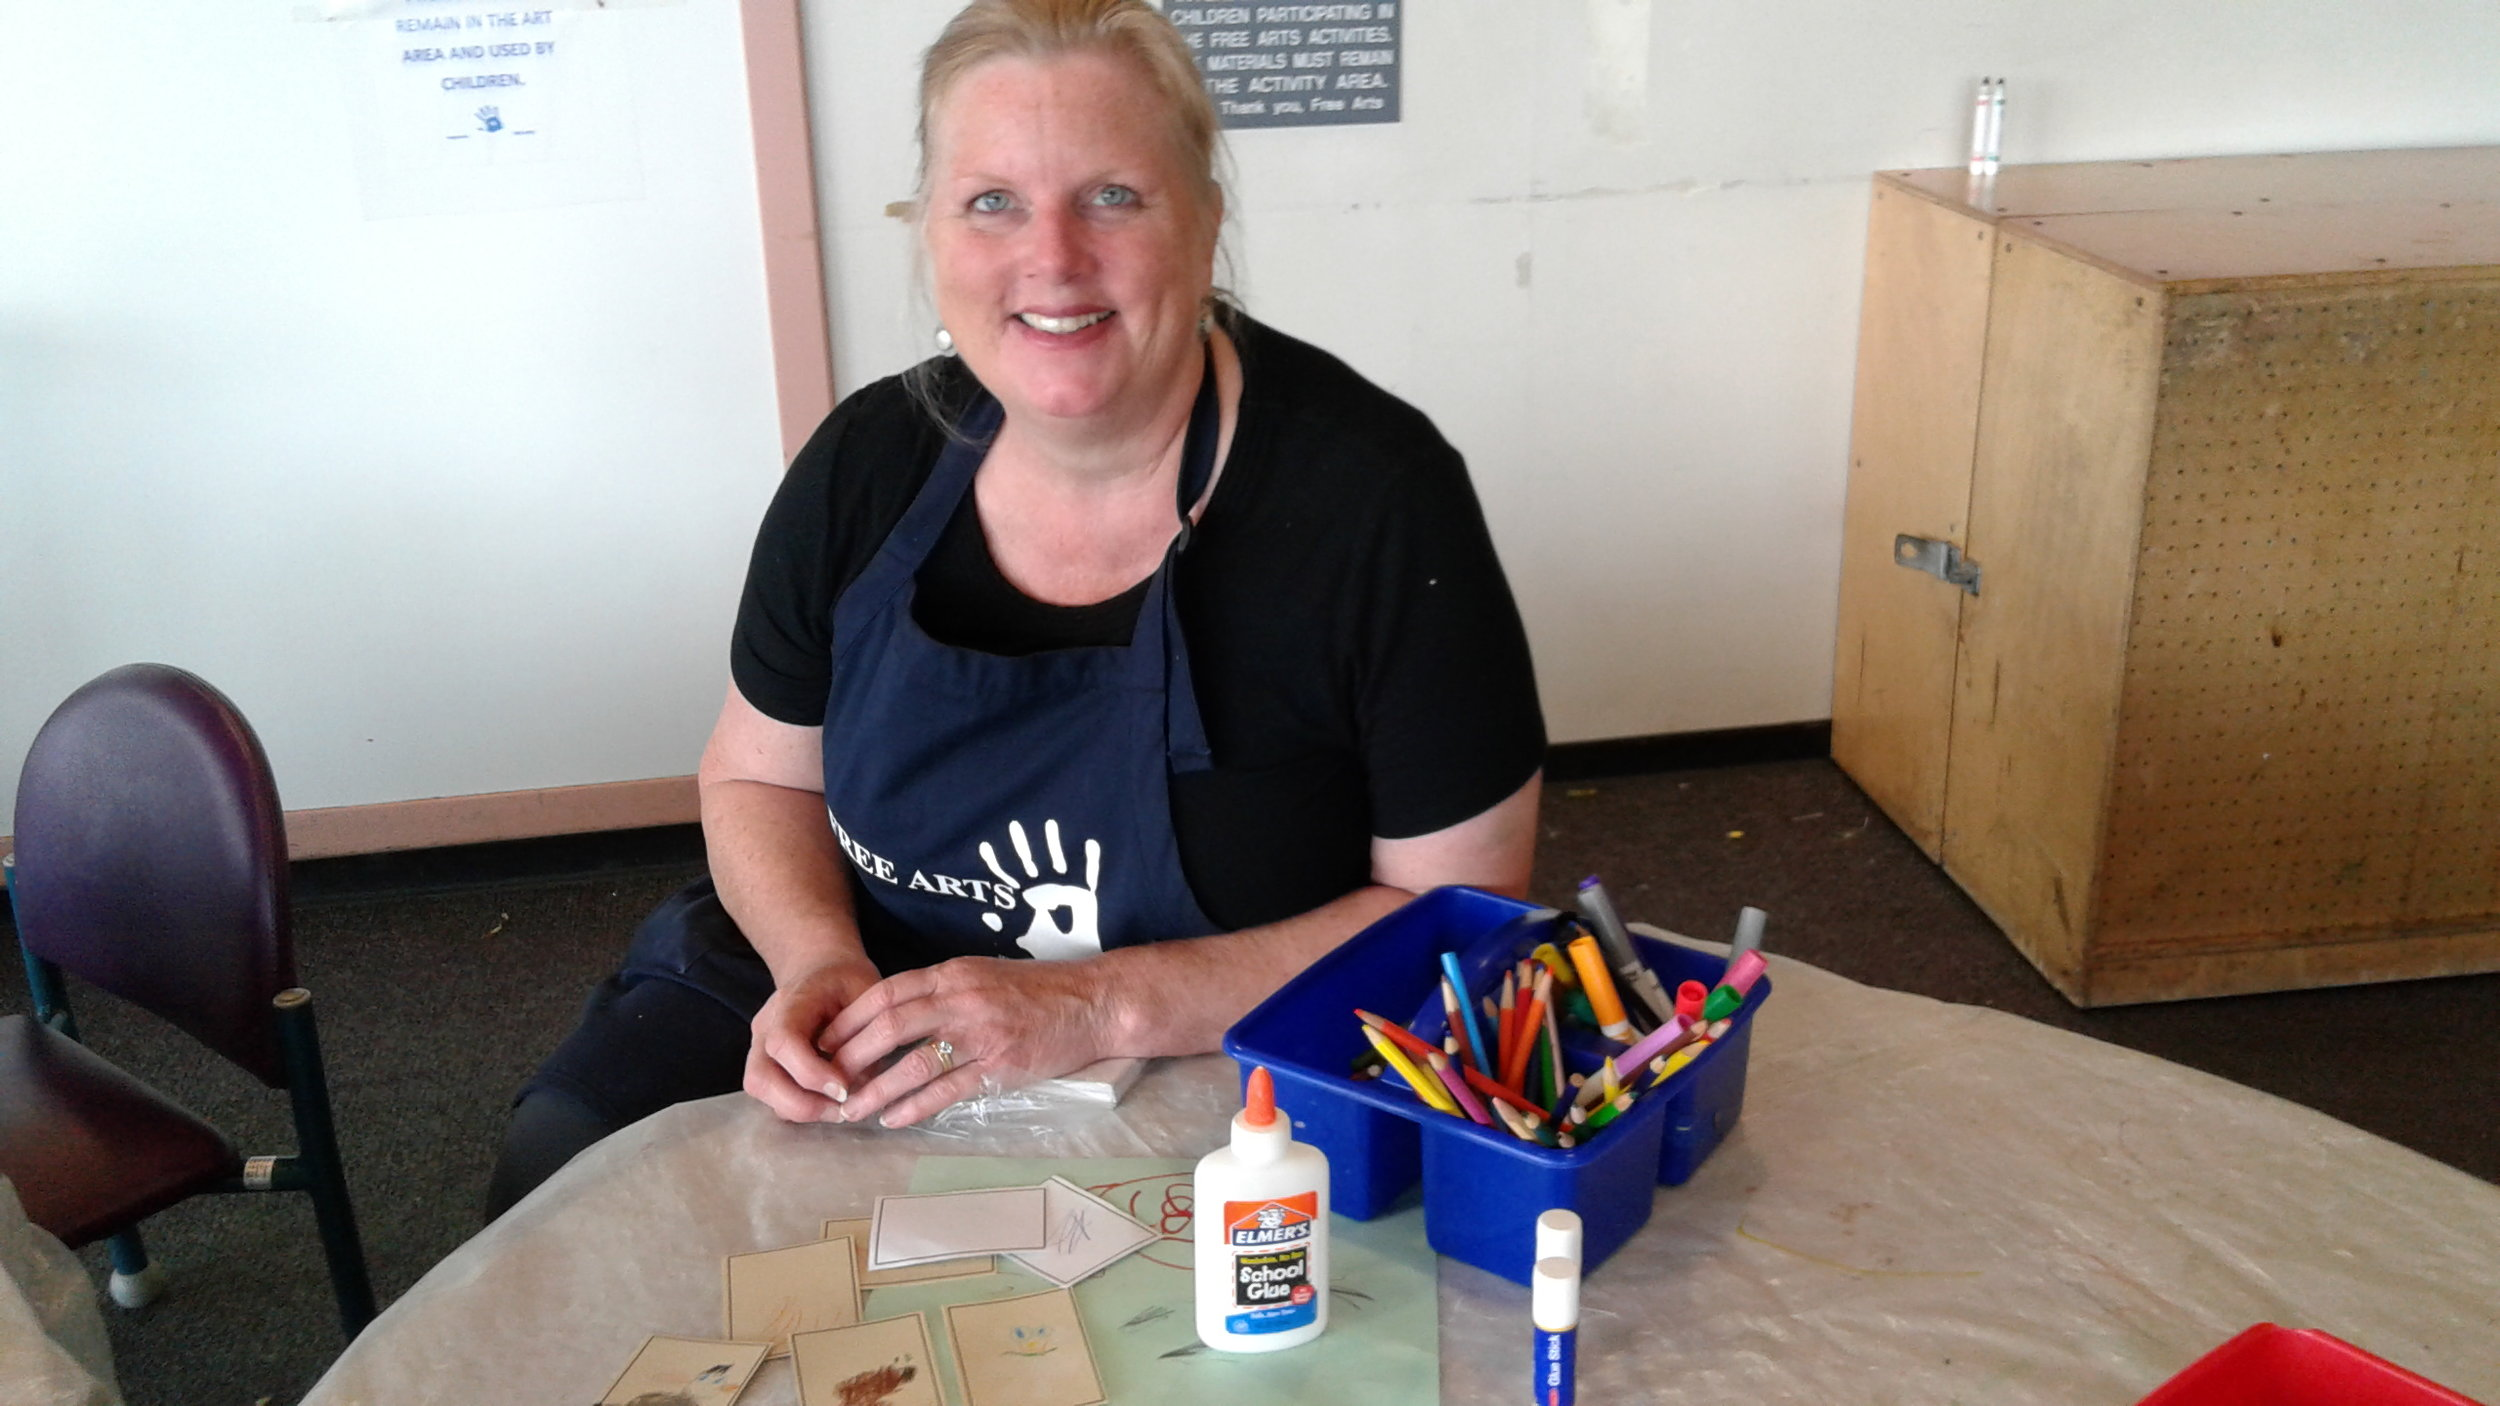 Kerrin, volunteer mentor at the Courthouse Program.